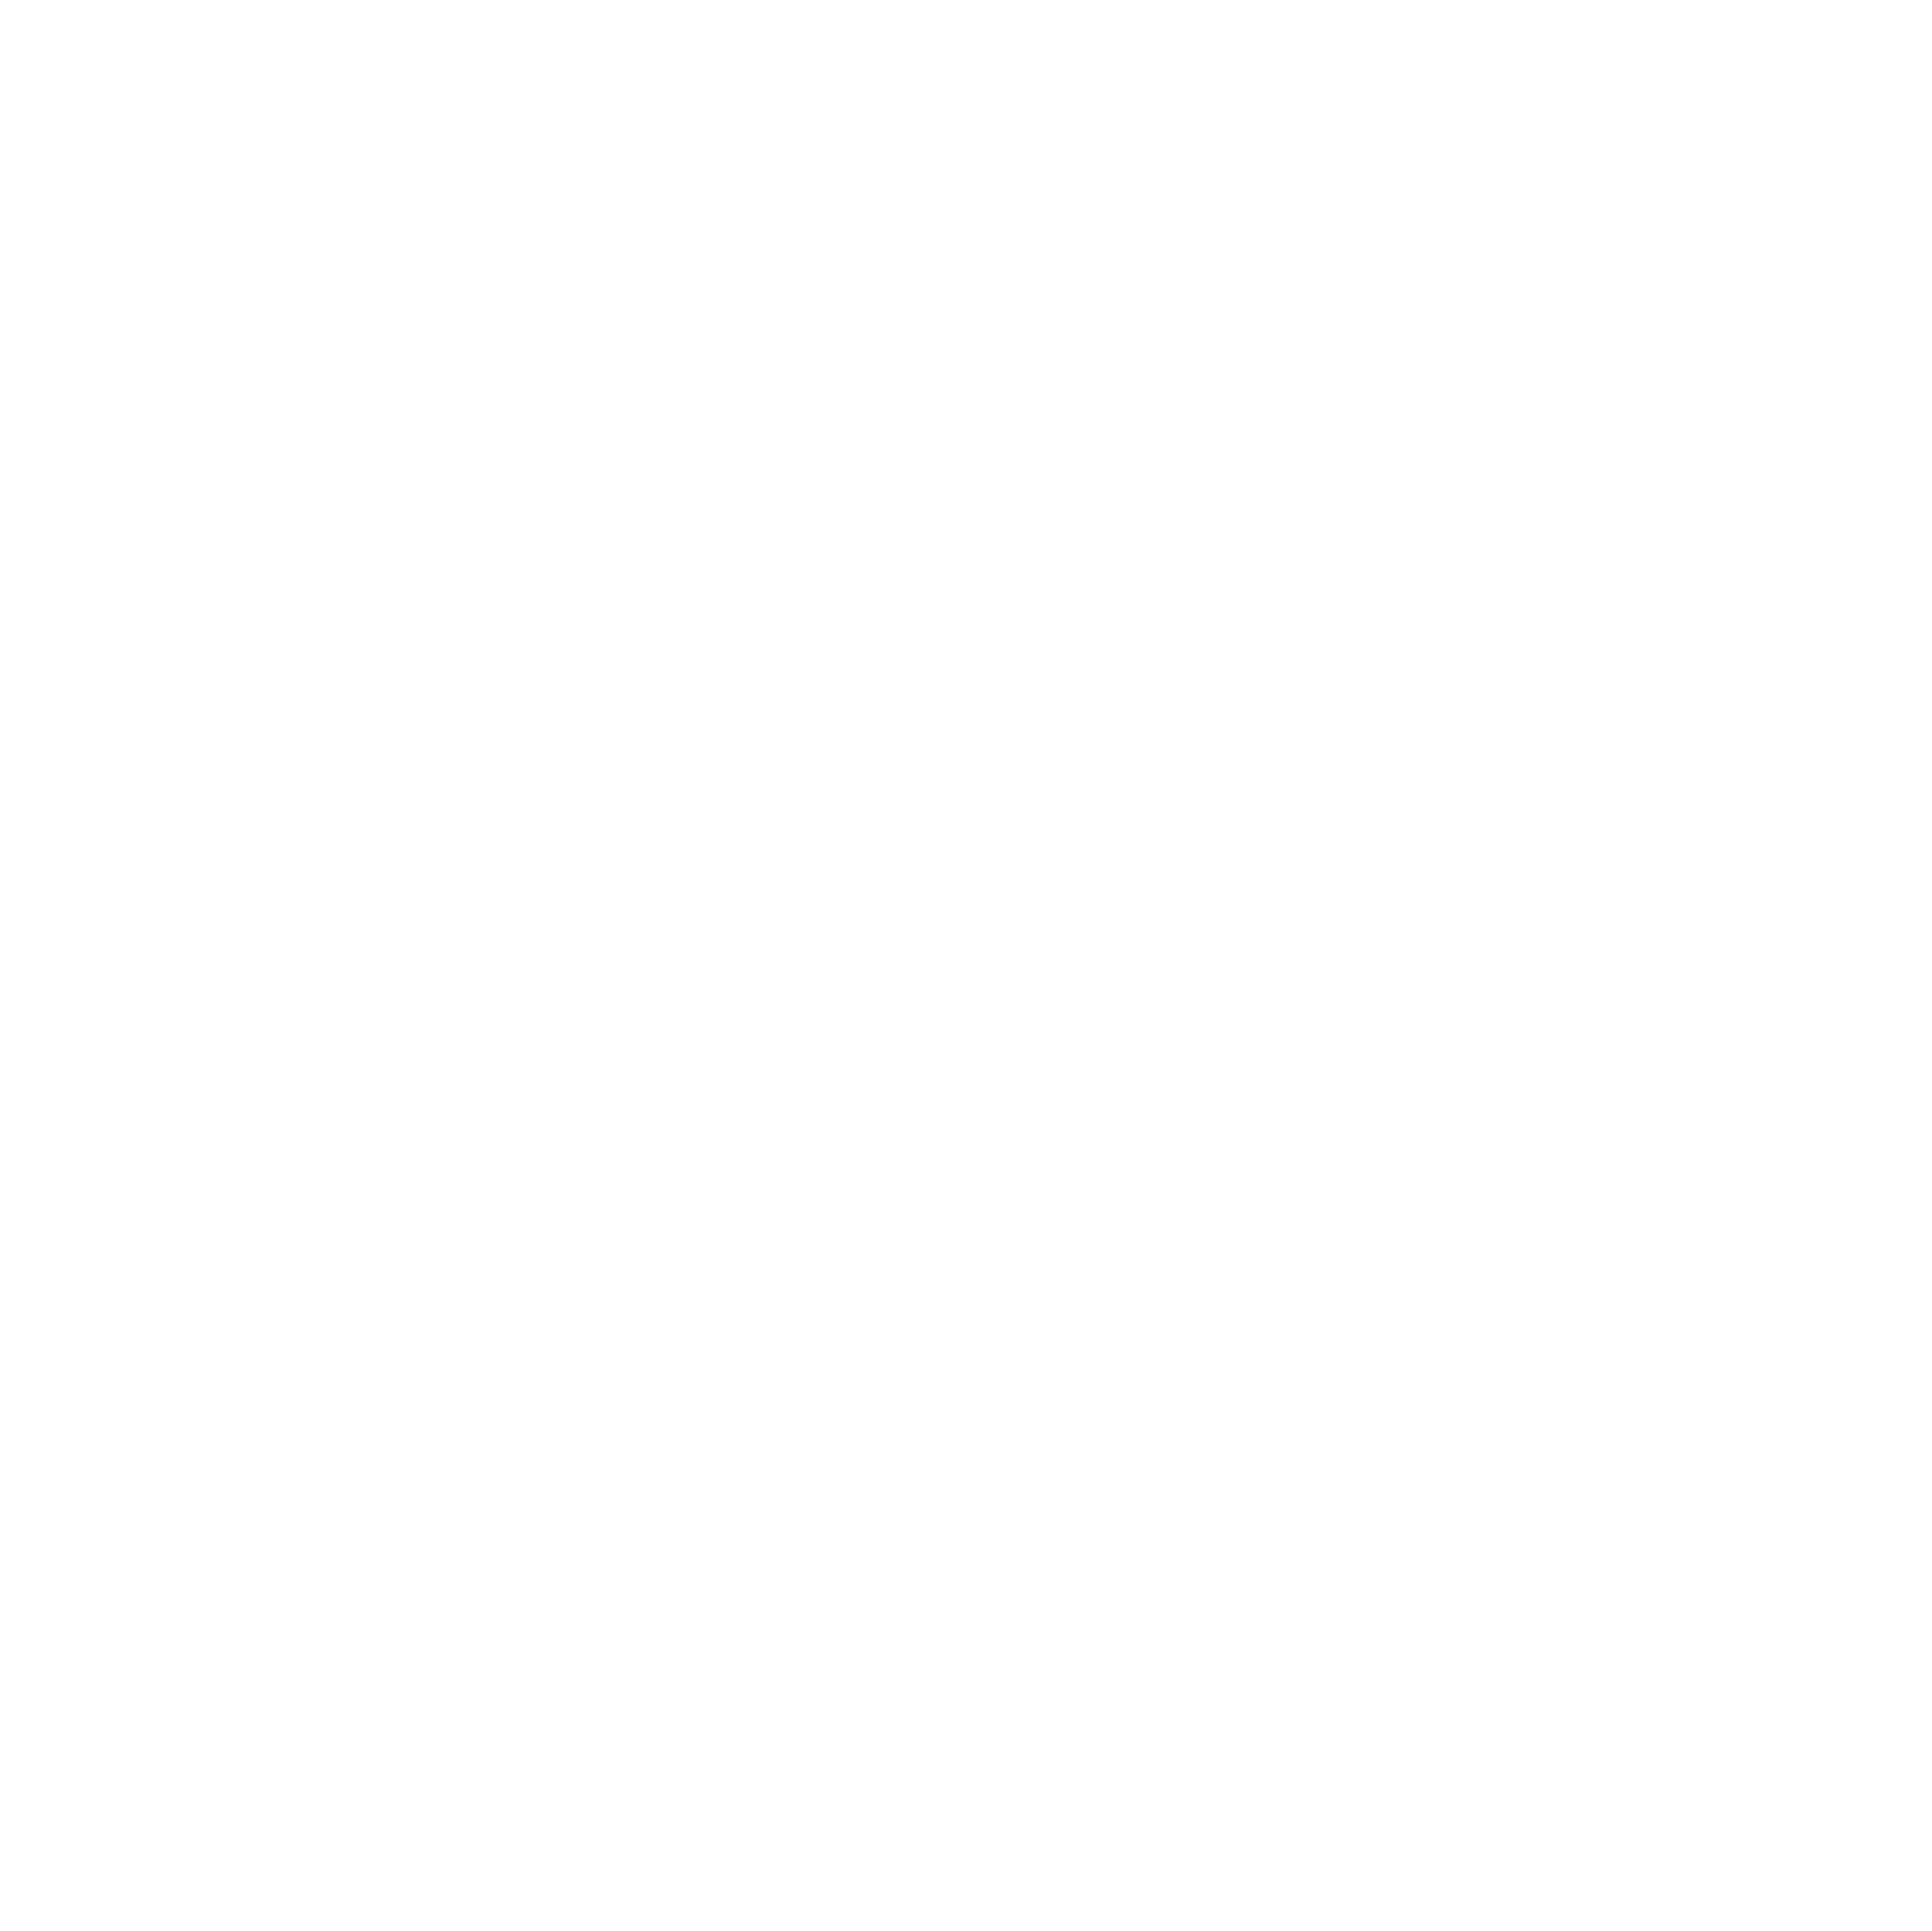 VacationPropertyLoans.com -